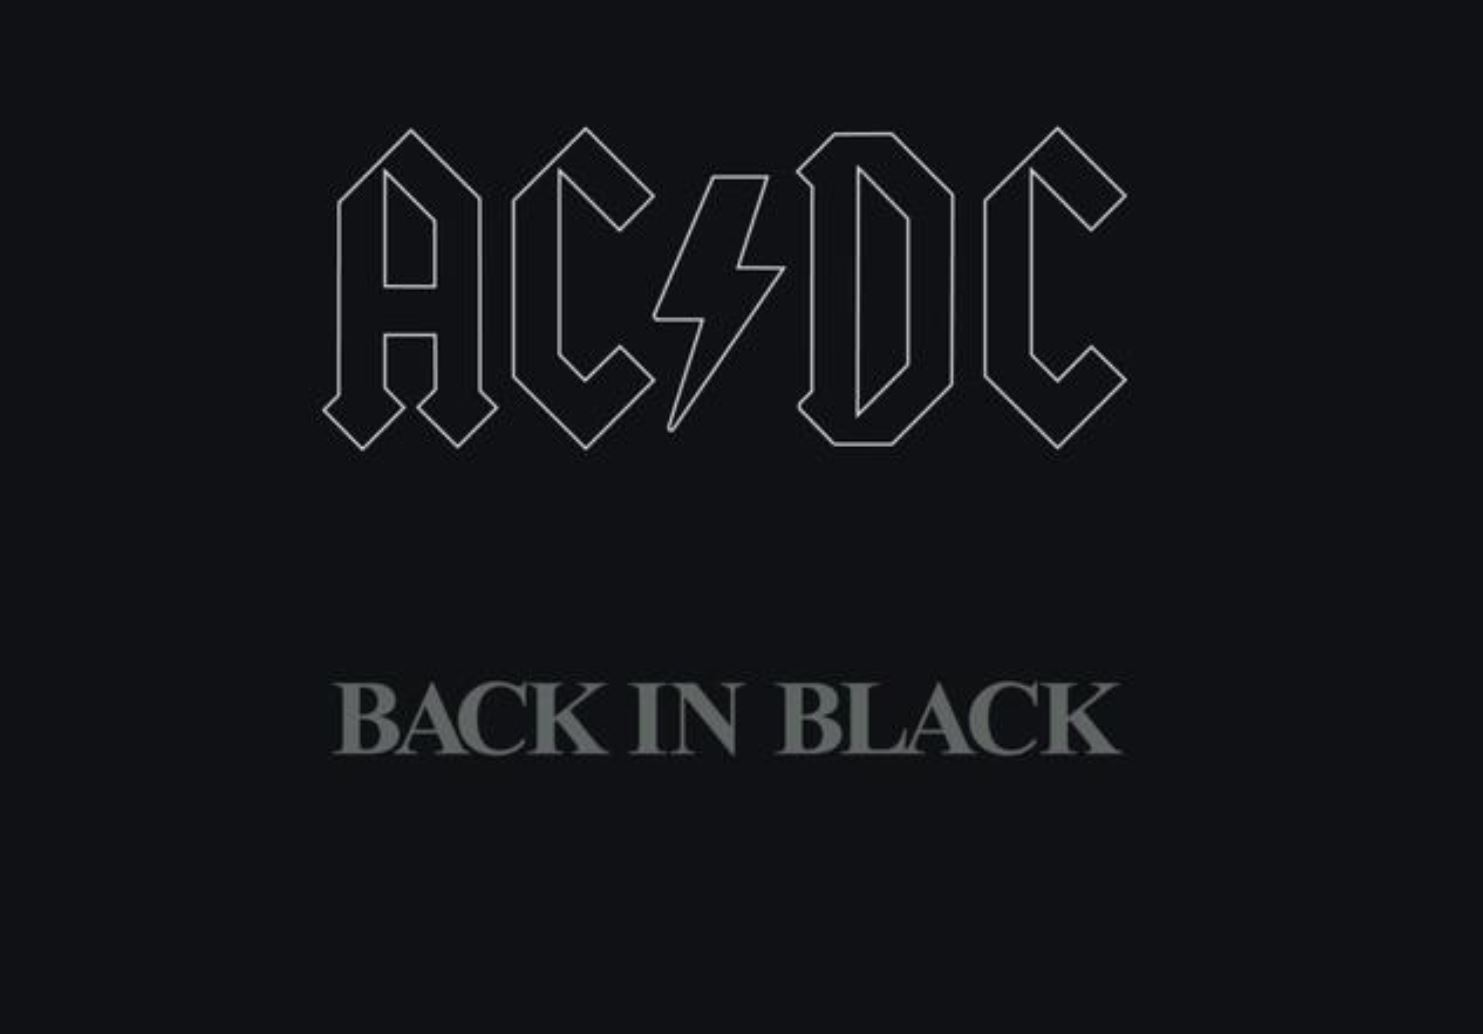 Even in the darkest hour there is always a sparkle of light - the story behind AC/DC's historic album Back in Black